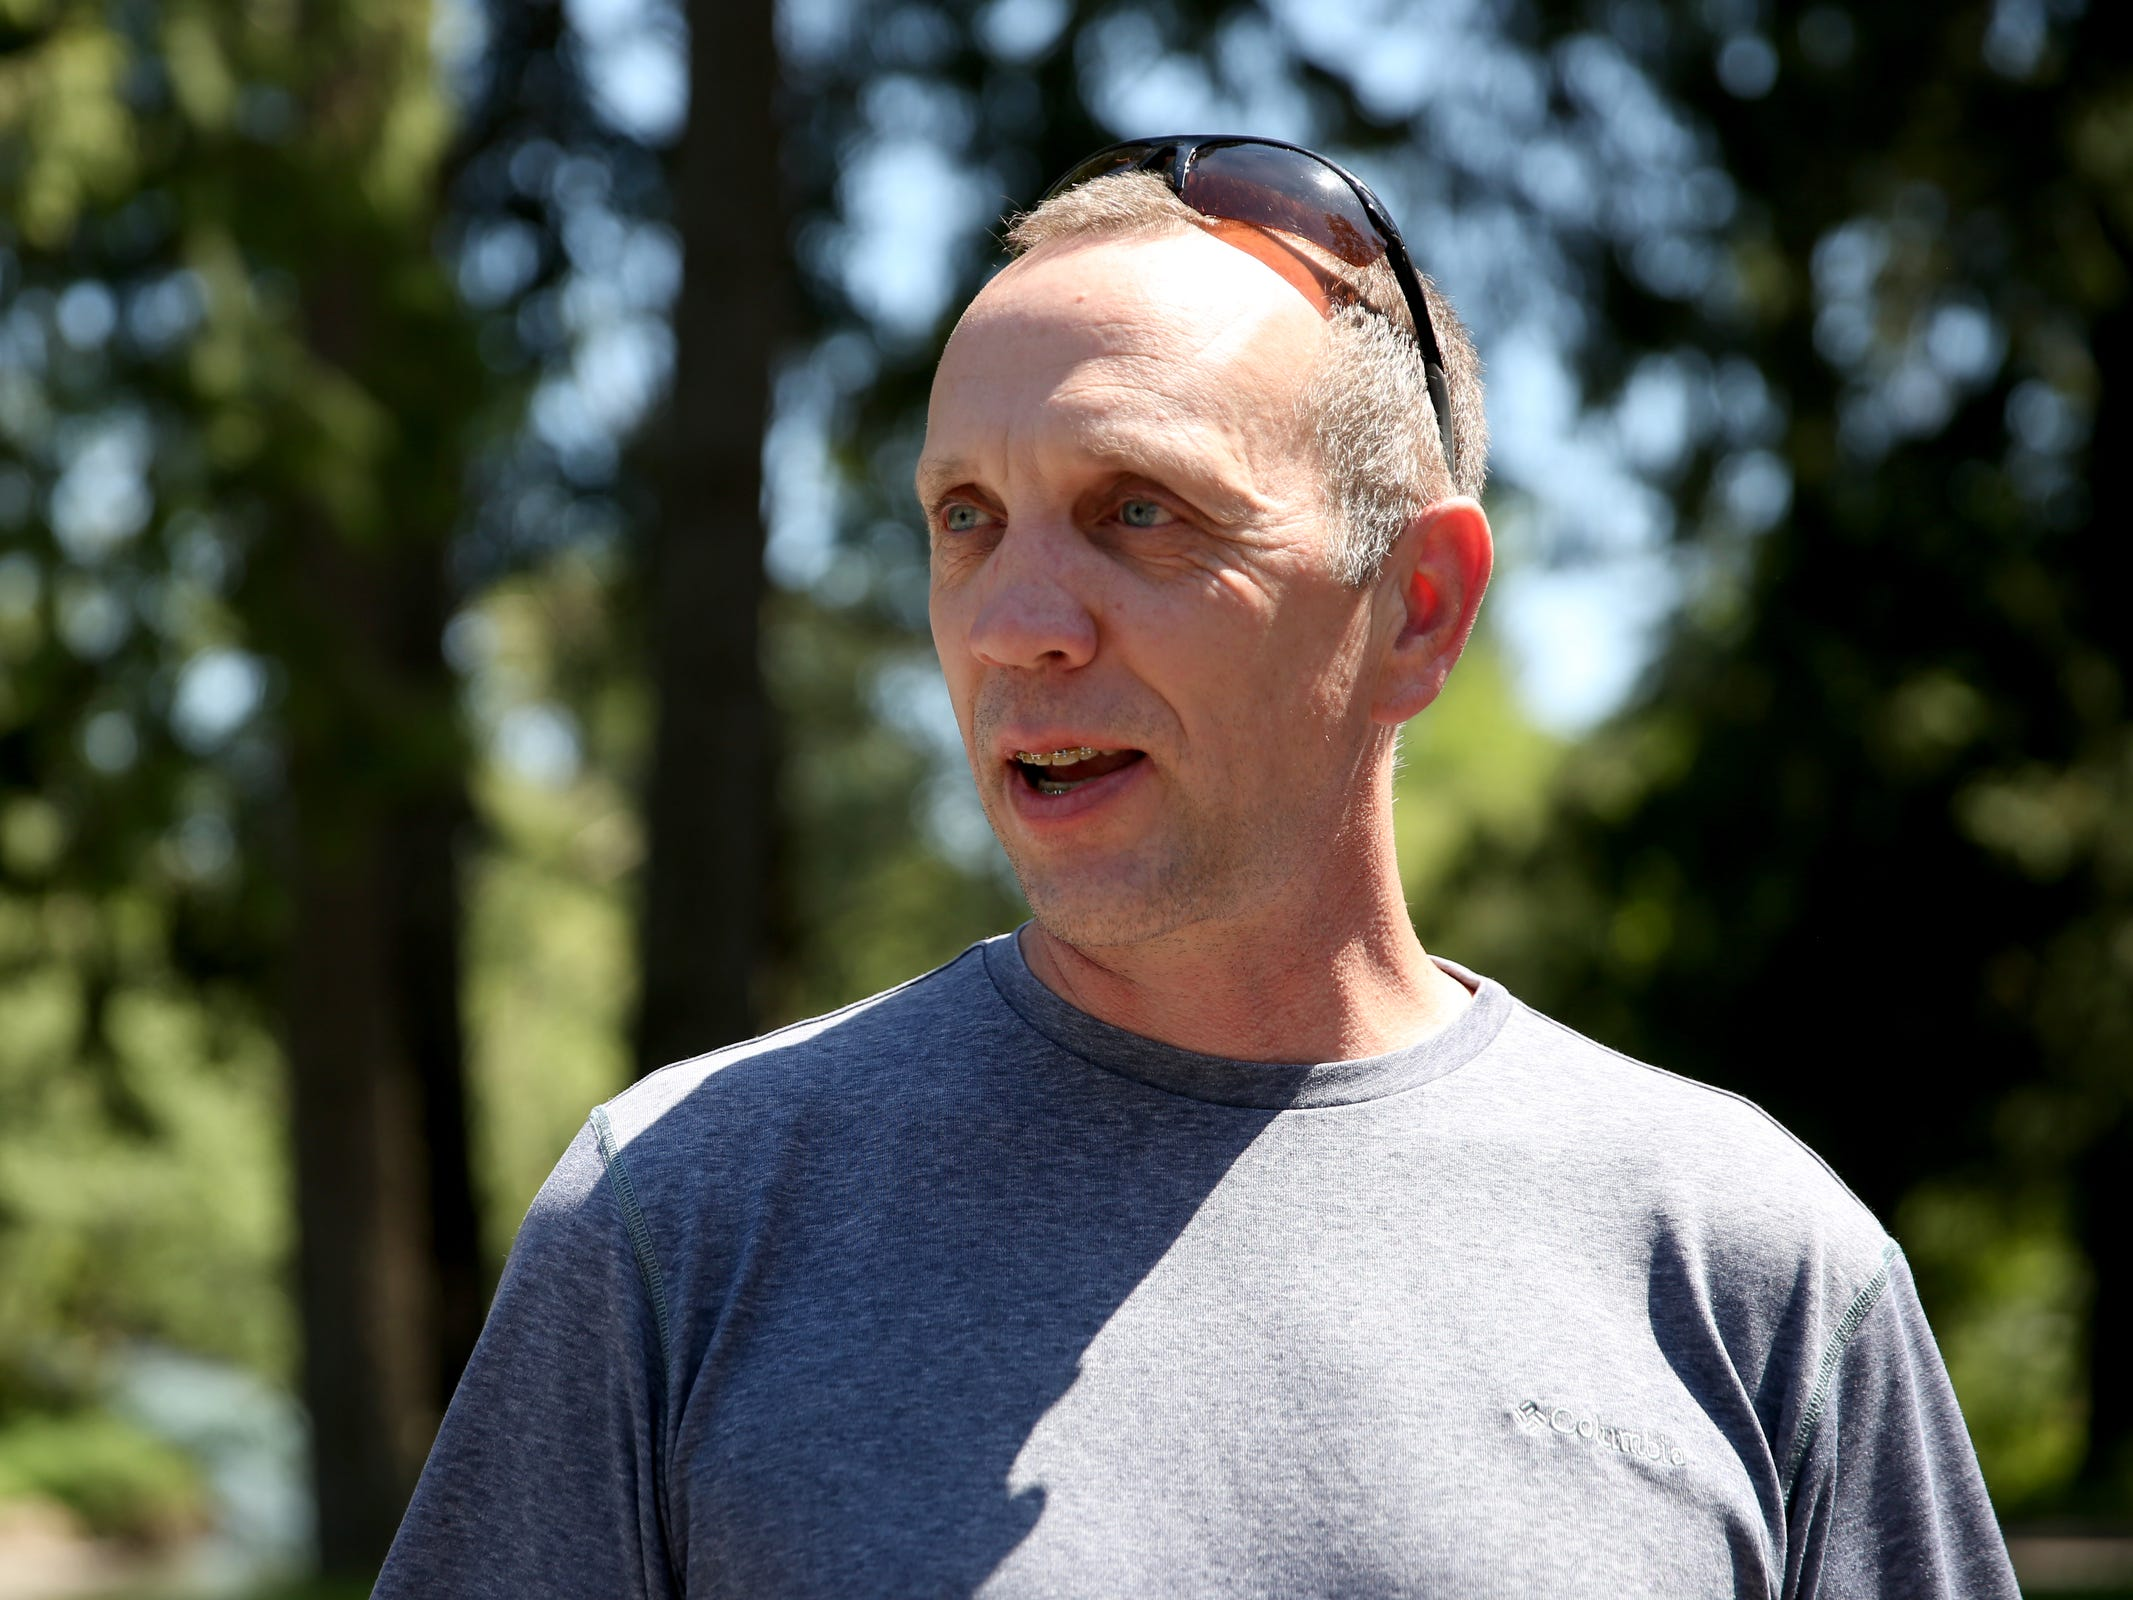 Tim Sherman, the operations and maintenance supervisor at the Geren Island Water Treatment Facility near Stayton on May 10, 2019. Salem officials are planning to spend more than $75 million to build defenses against toxic algae, in an effort to avoid a rerun of last year's drinking water crisis.